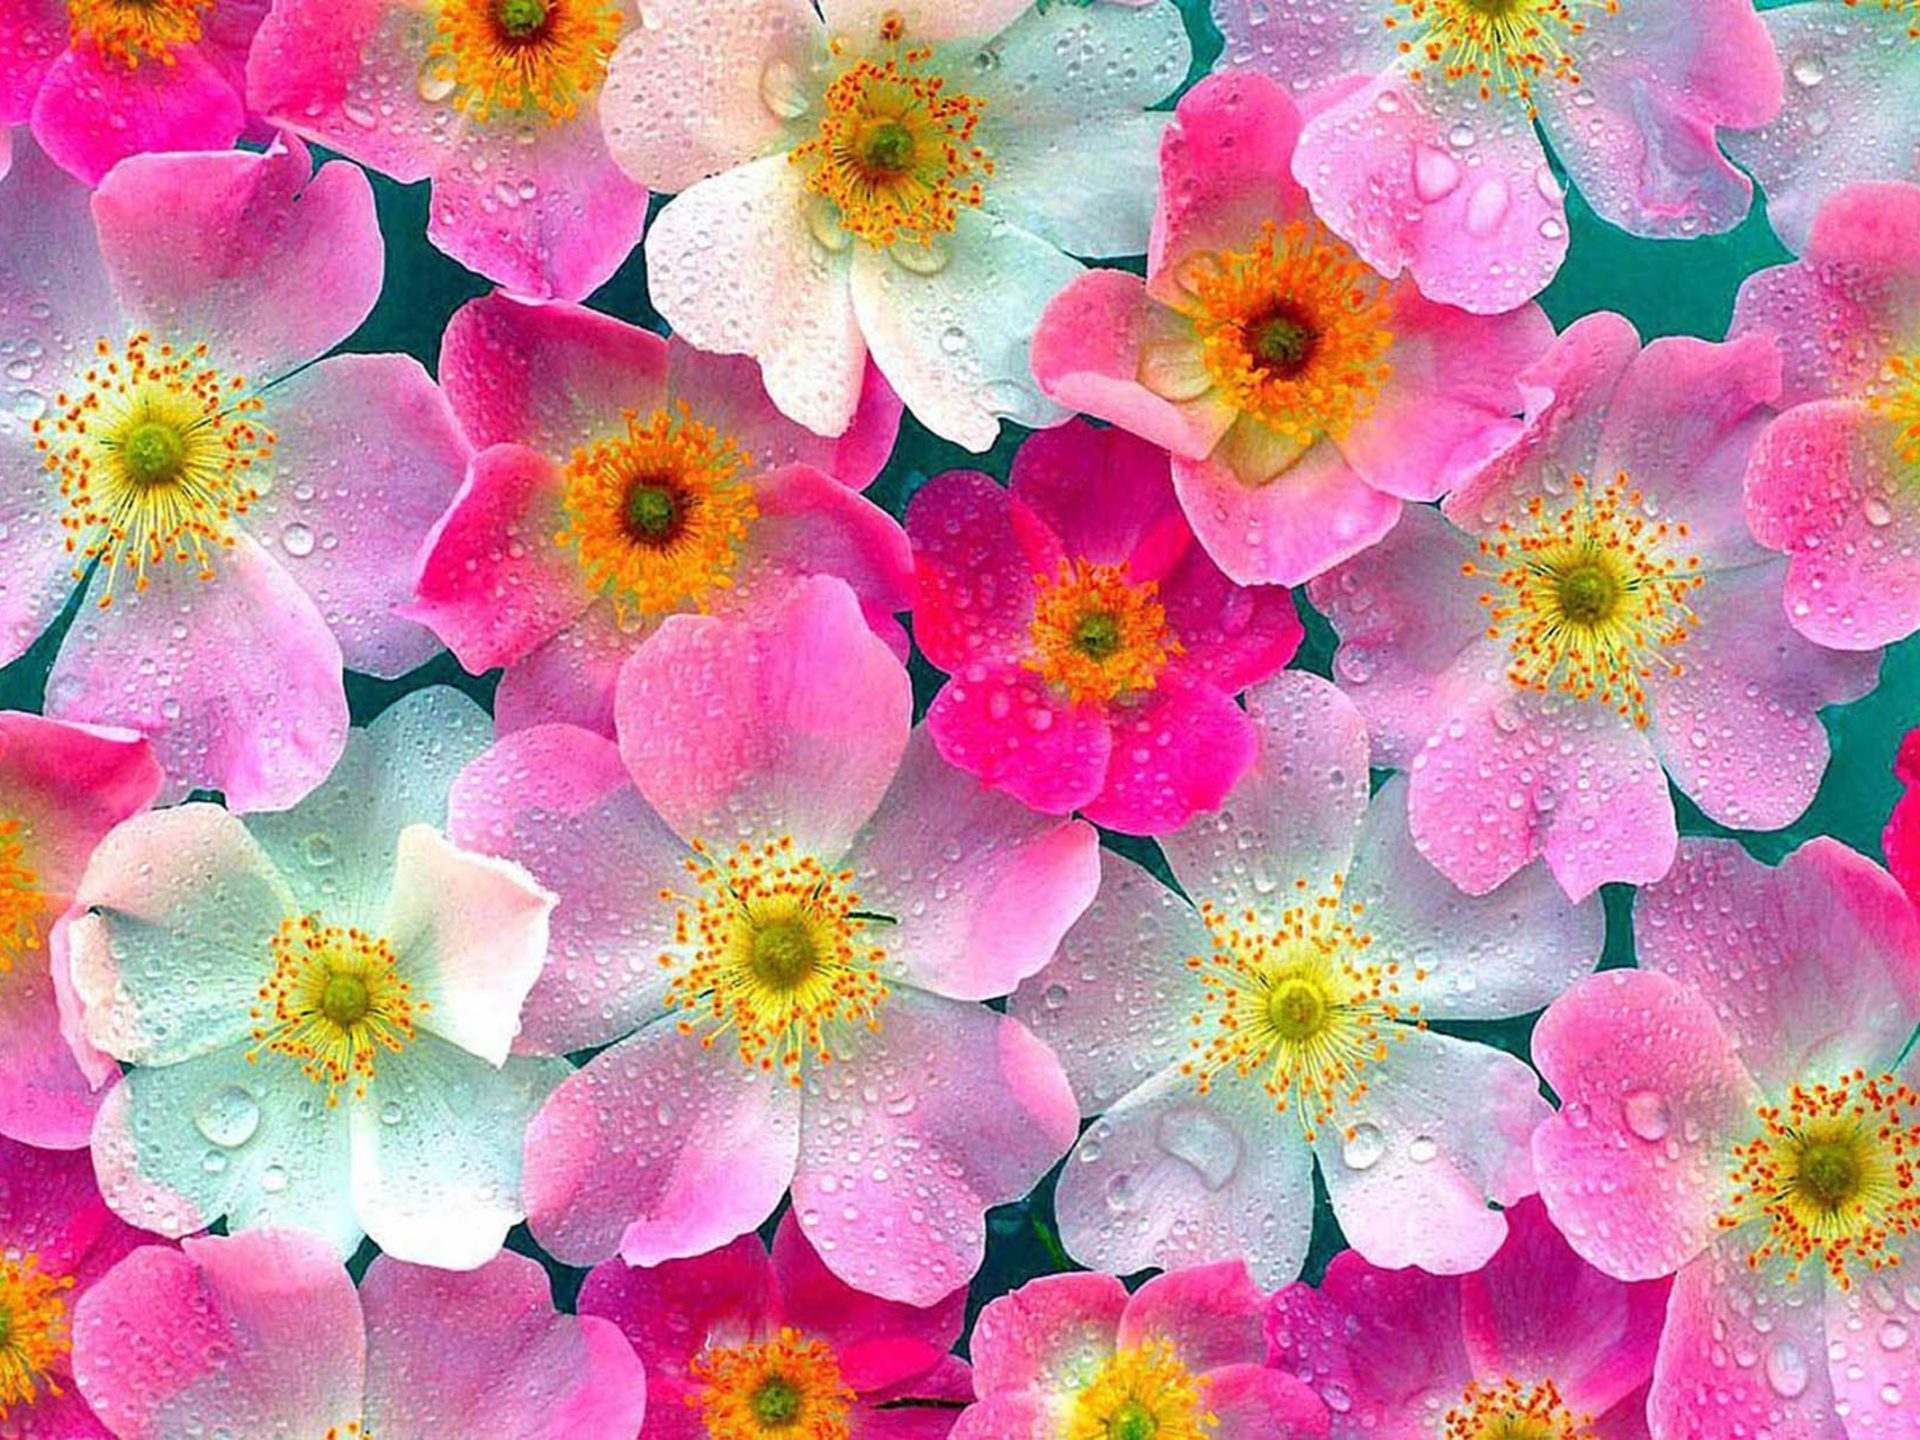 Cute Flowers Wallpaper Hd Skilal 457278  Wallpapers13com